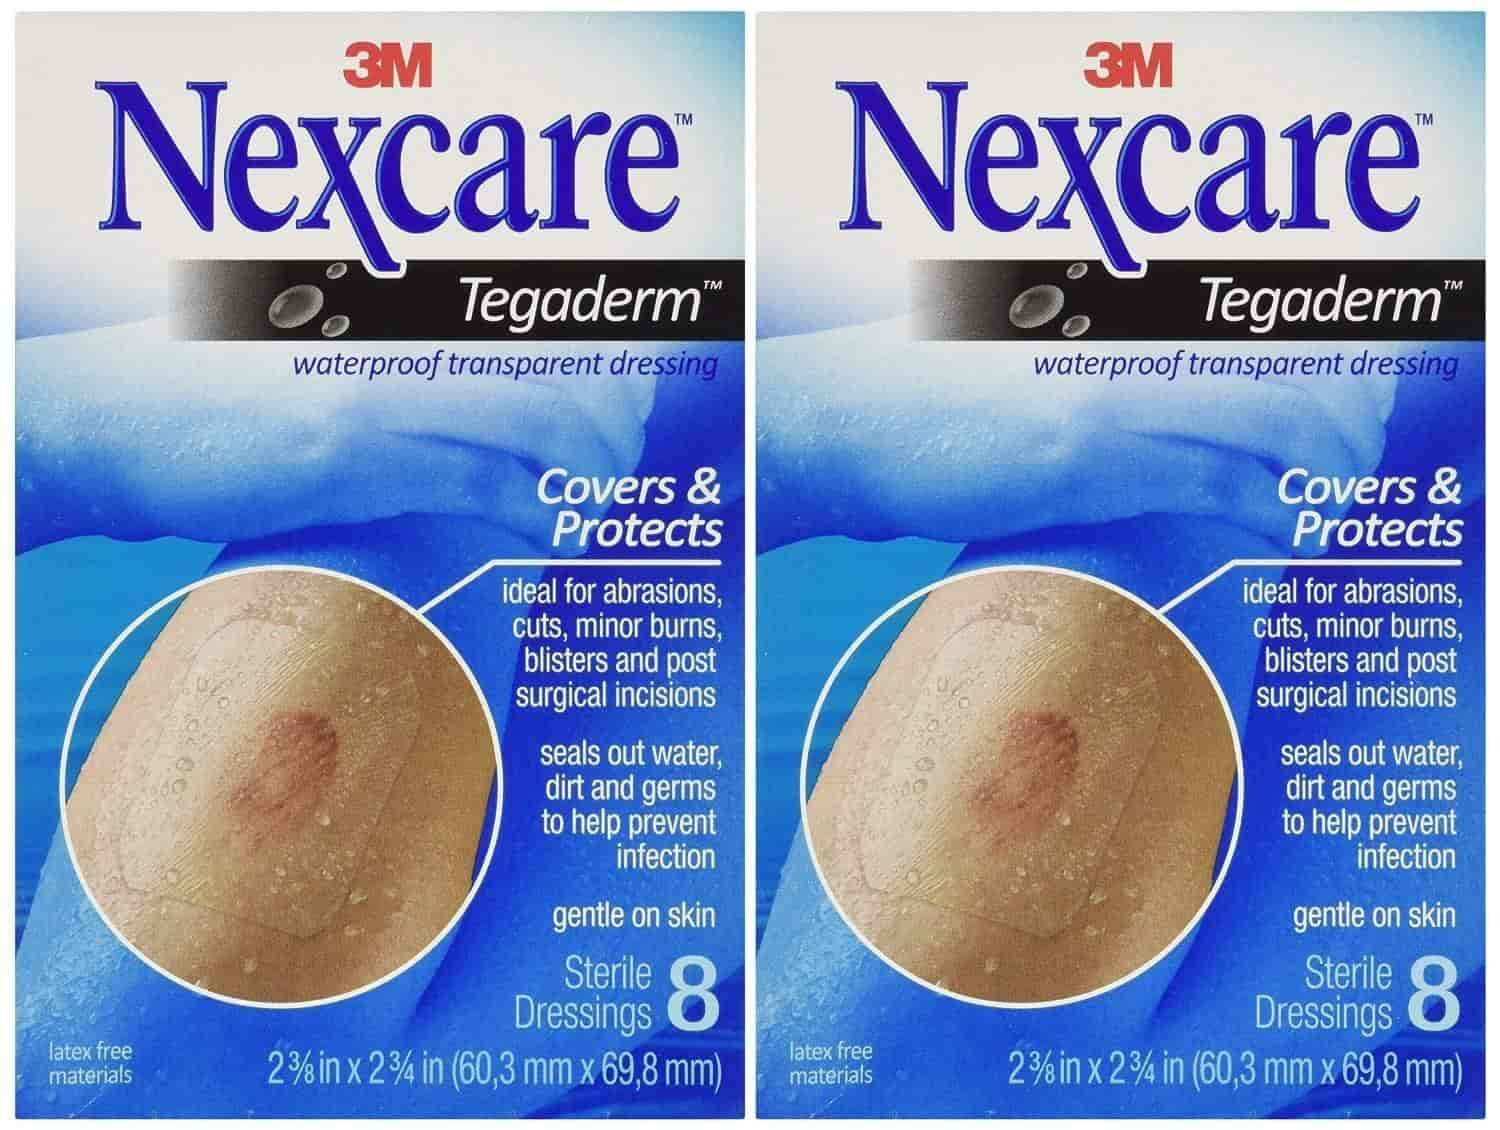 Nexcare tegaderm Waterproof Transparent Dressing 2-3//8 x 2-3//4 8Count Pack of 3